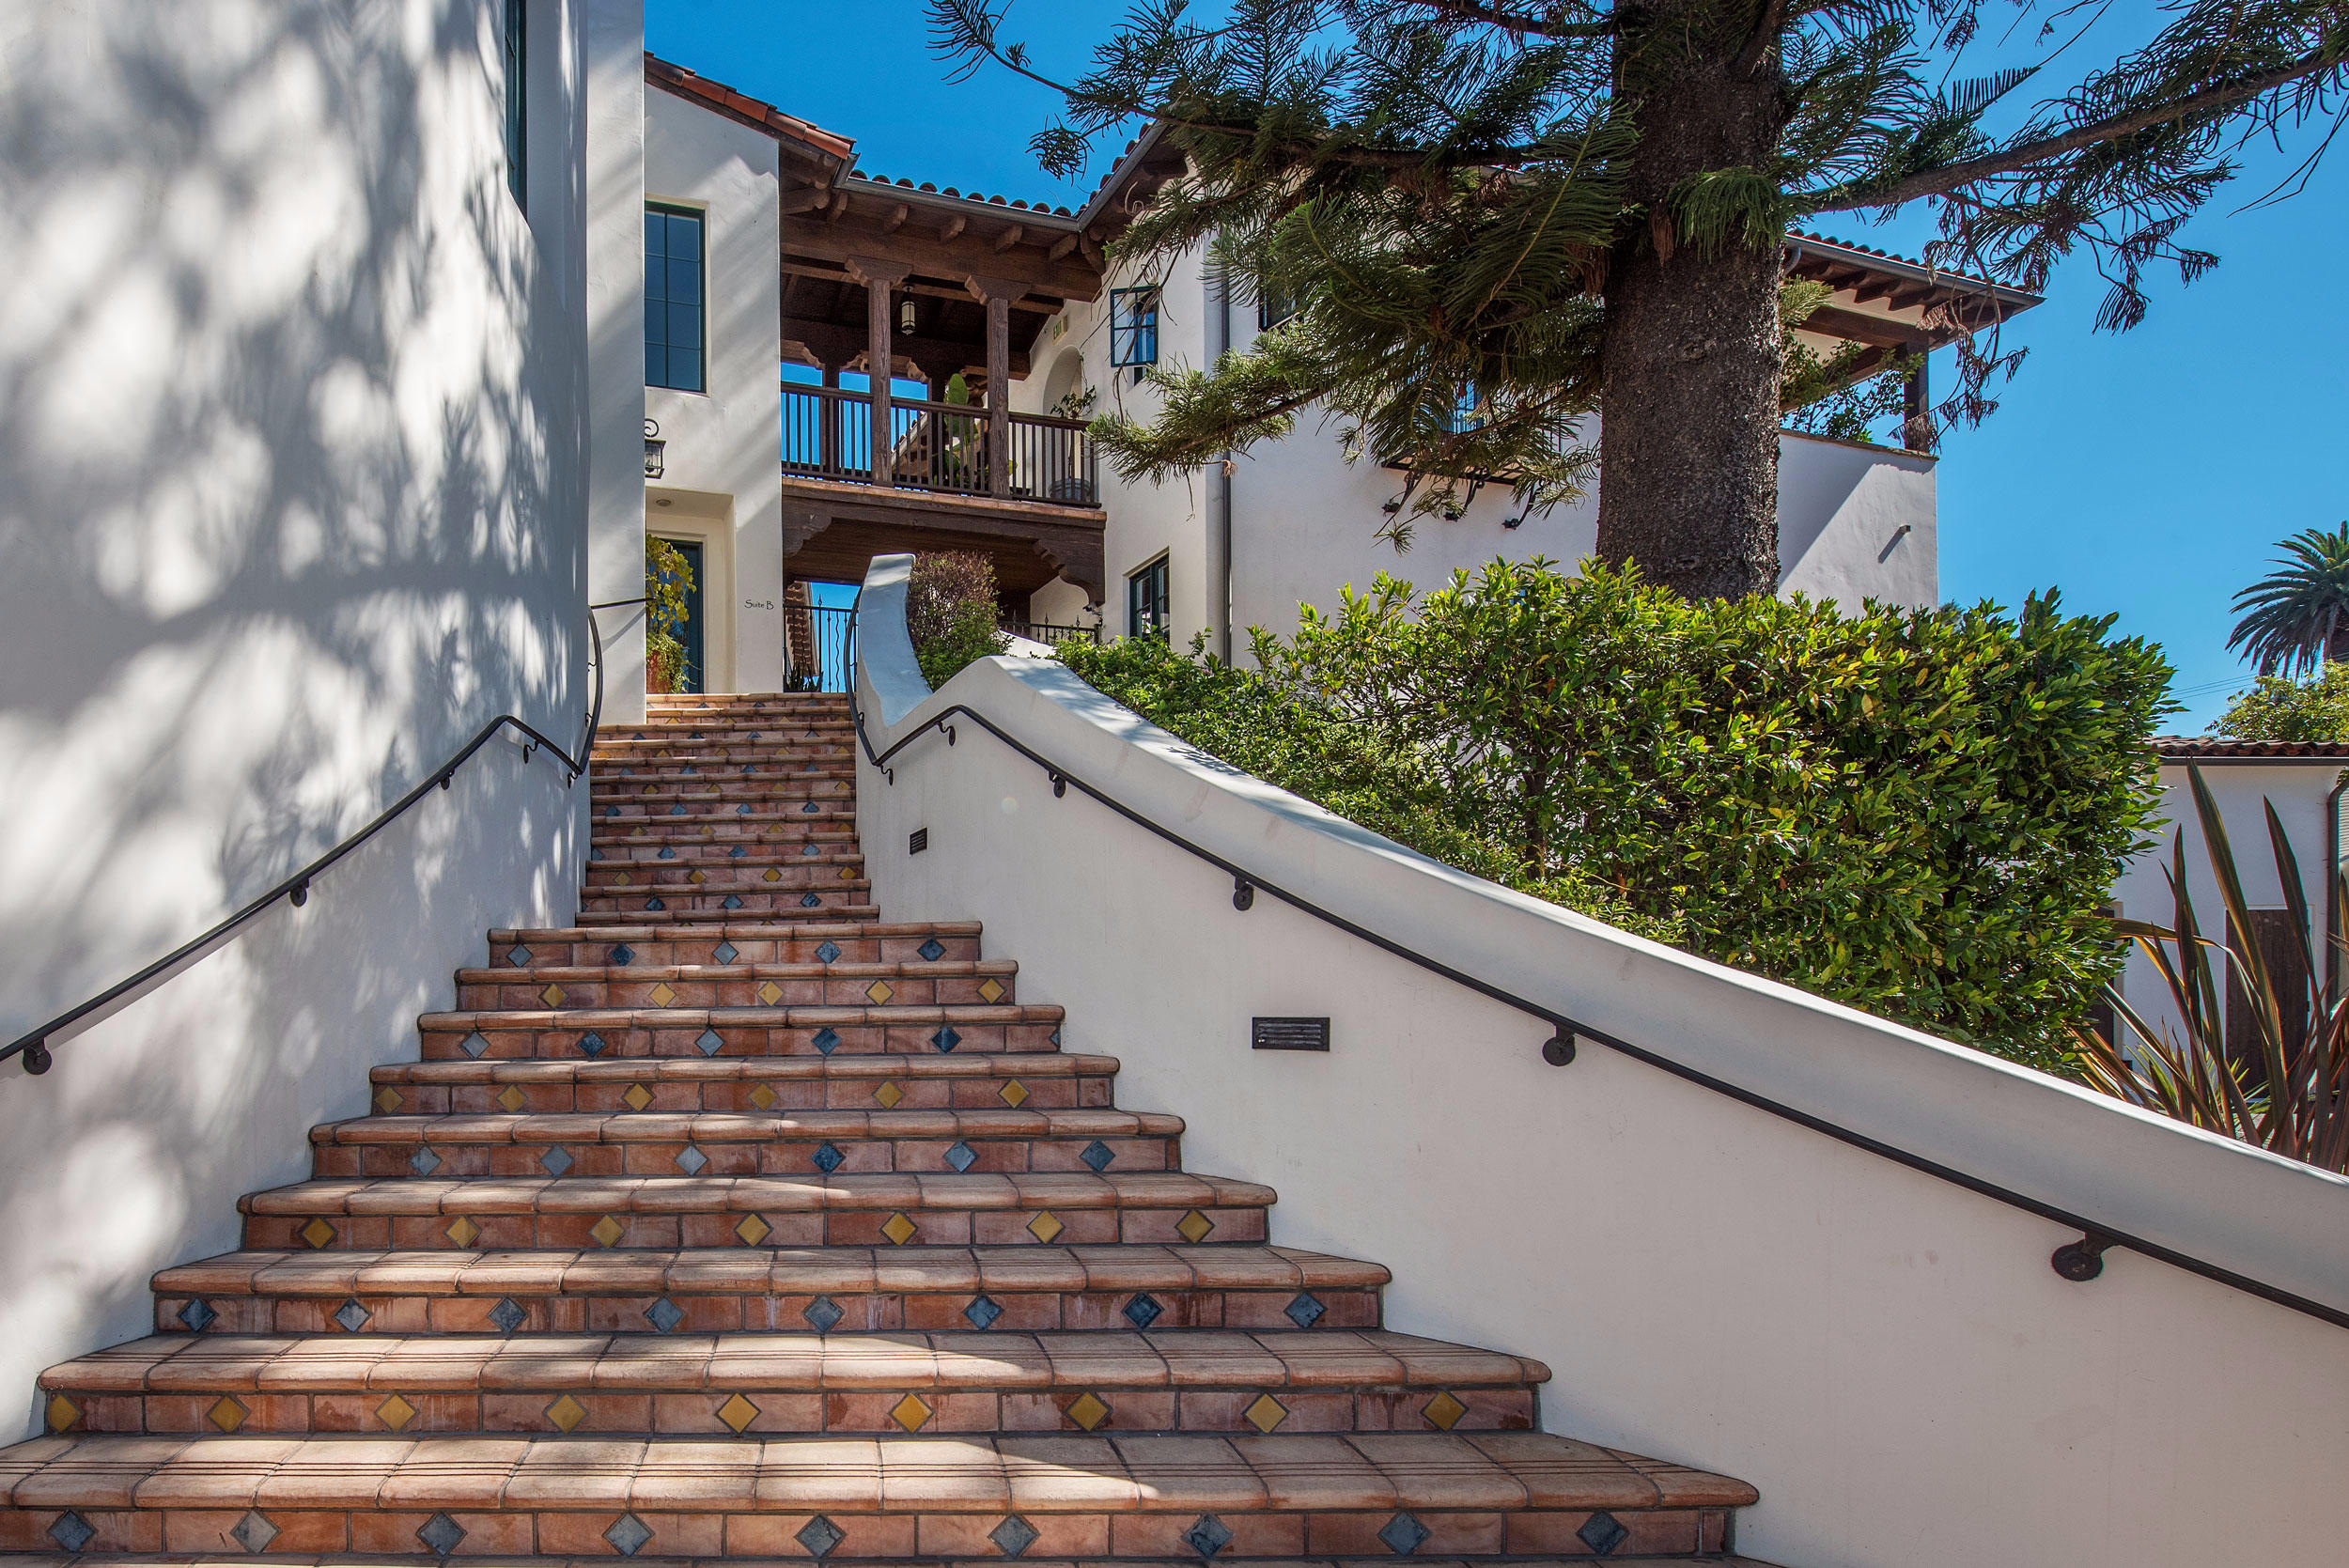 Property photo for 121 W De La Guerra St #13 Santa Barbara, California 93101 - 16-3354